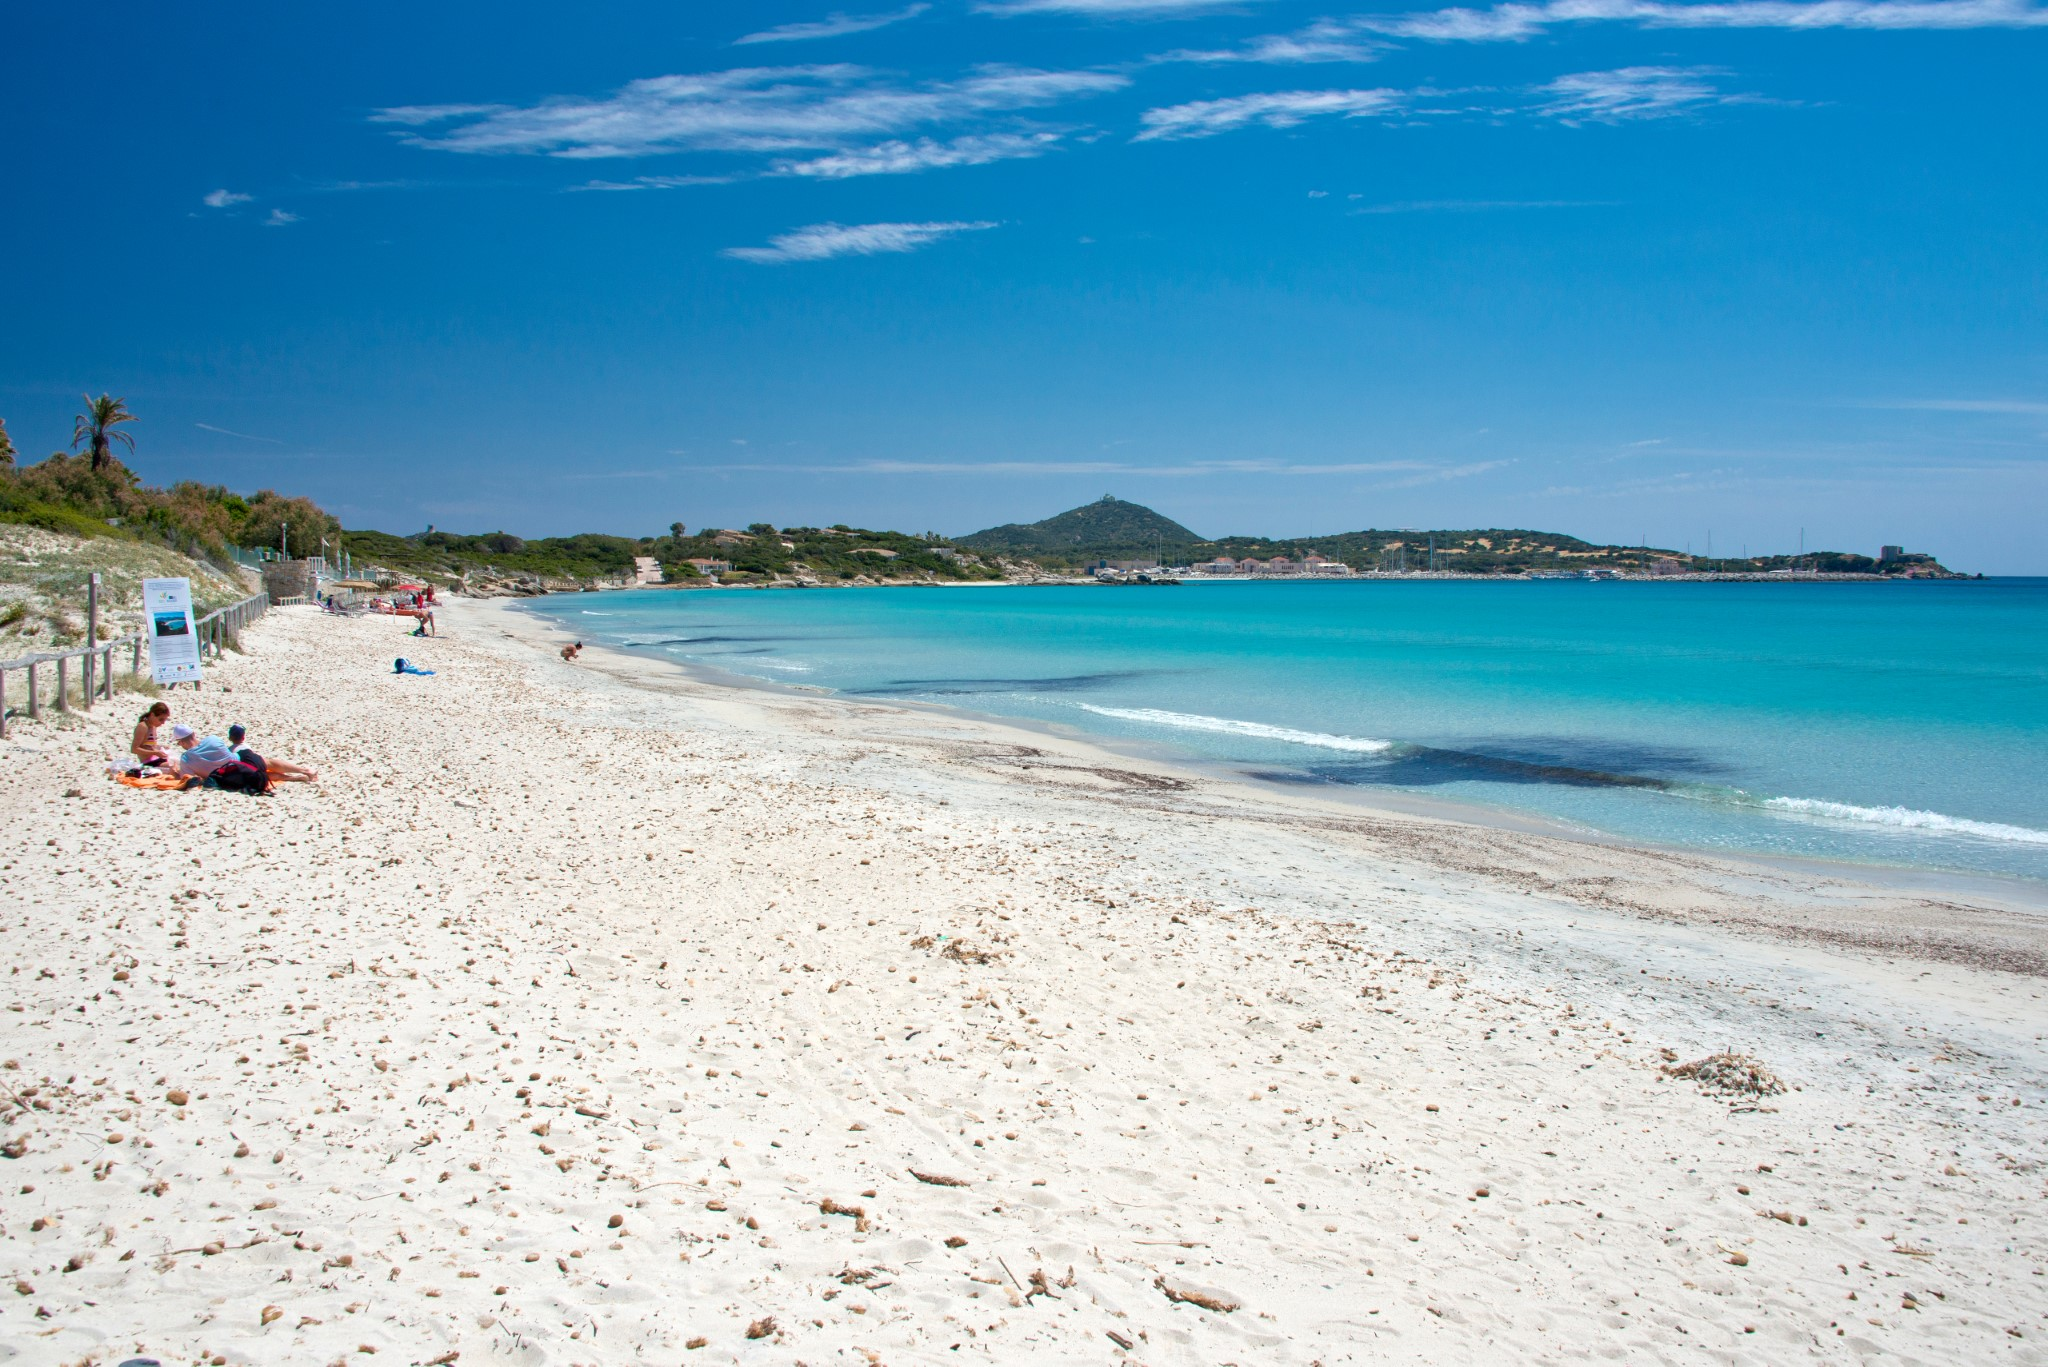 crystal clear water and white sand at Campulongu beach in Villasimius